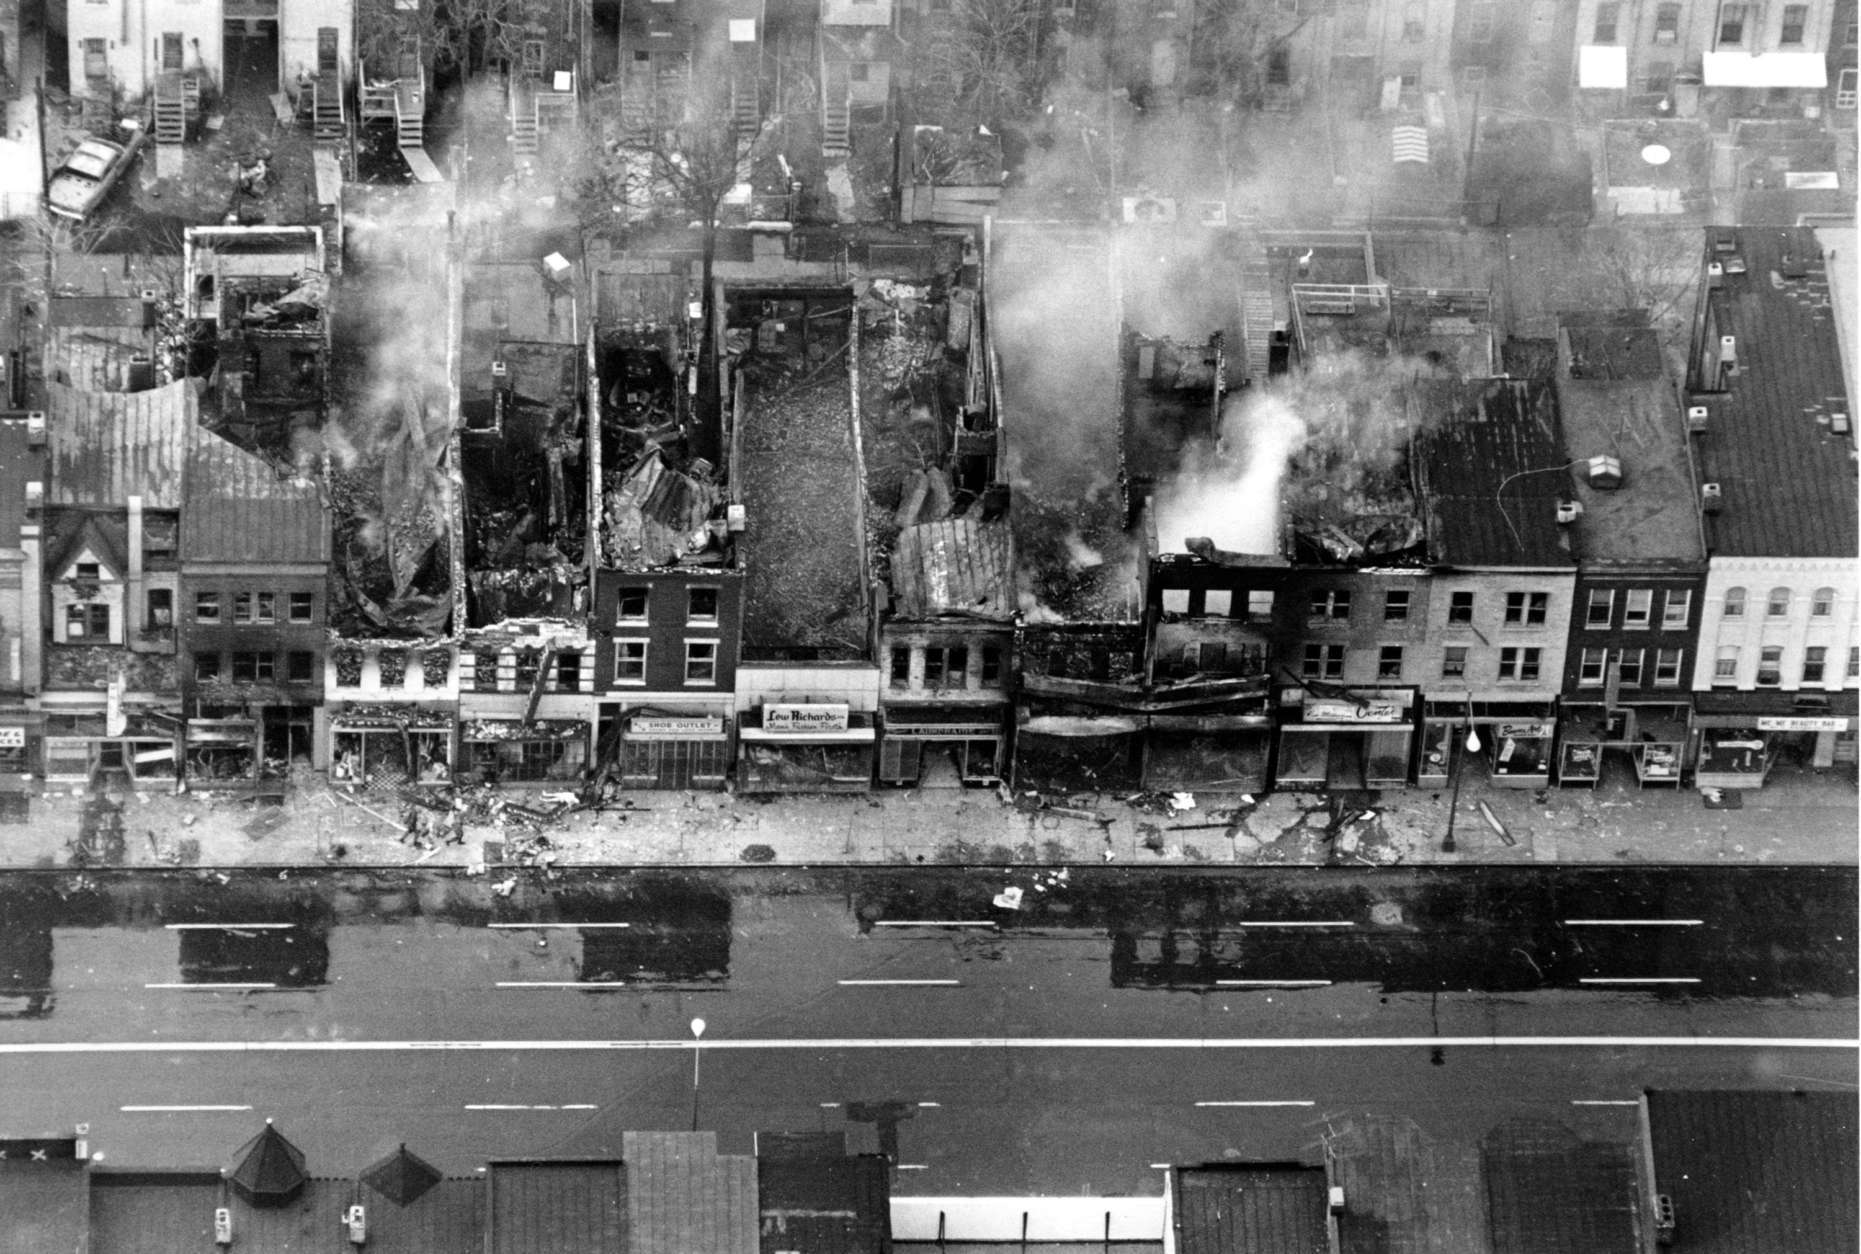 This aerial photo shows fire-gutted buildings, some still smouldering, along a block on H Street between 12th and 13th Streets in the northeast section of Washington, D.C. on April 5, 1968. Rioting broke out after the assassination of civil rights leader Dr. Martin Luther King, Jr., in Memphis, Tenn. on April 4. (AP Photo)